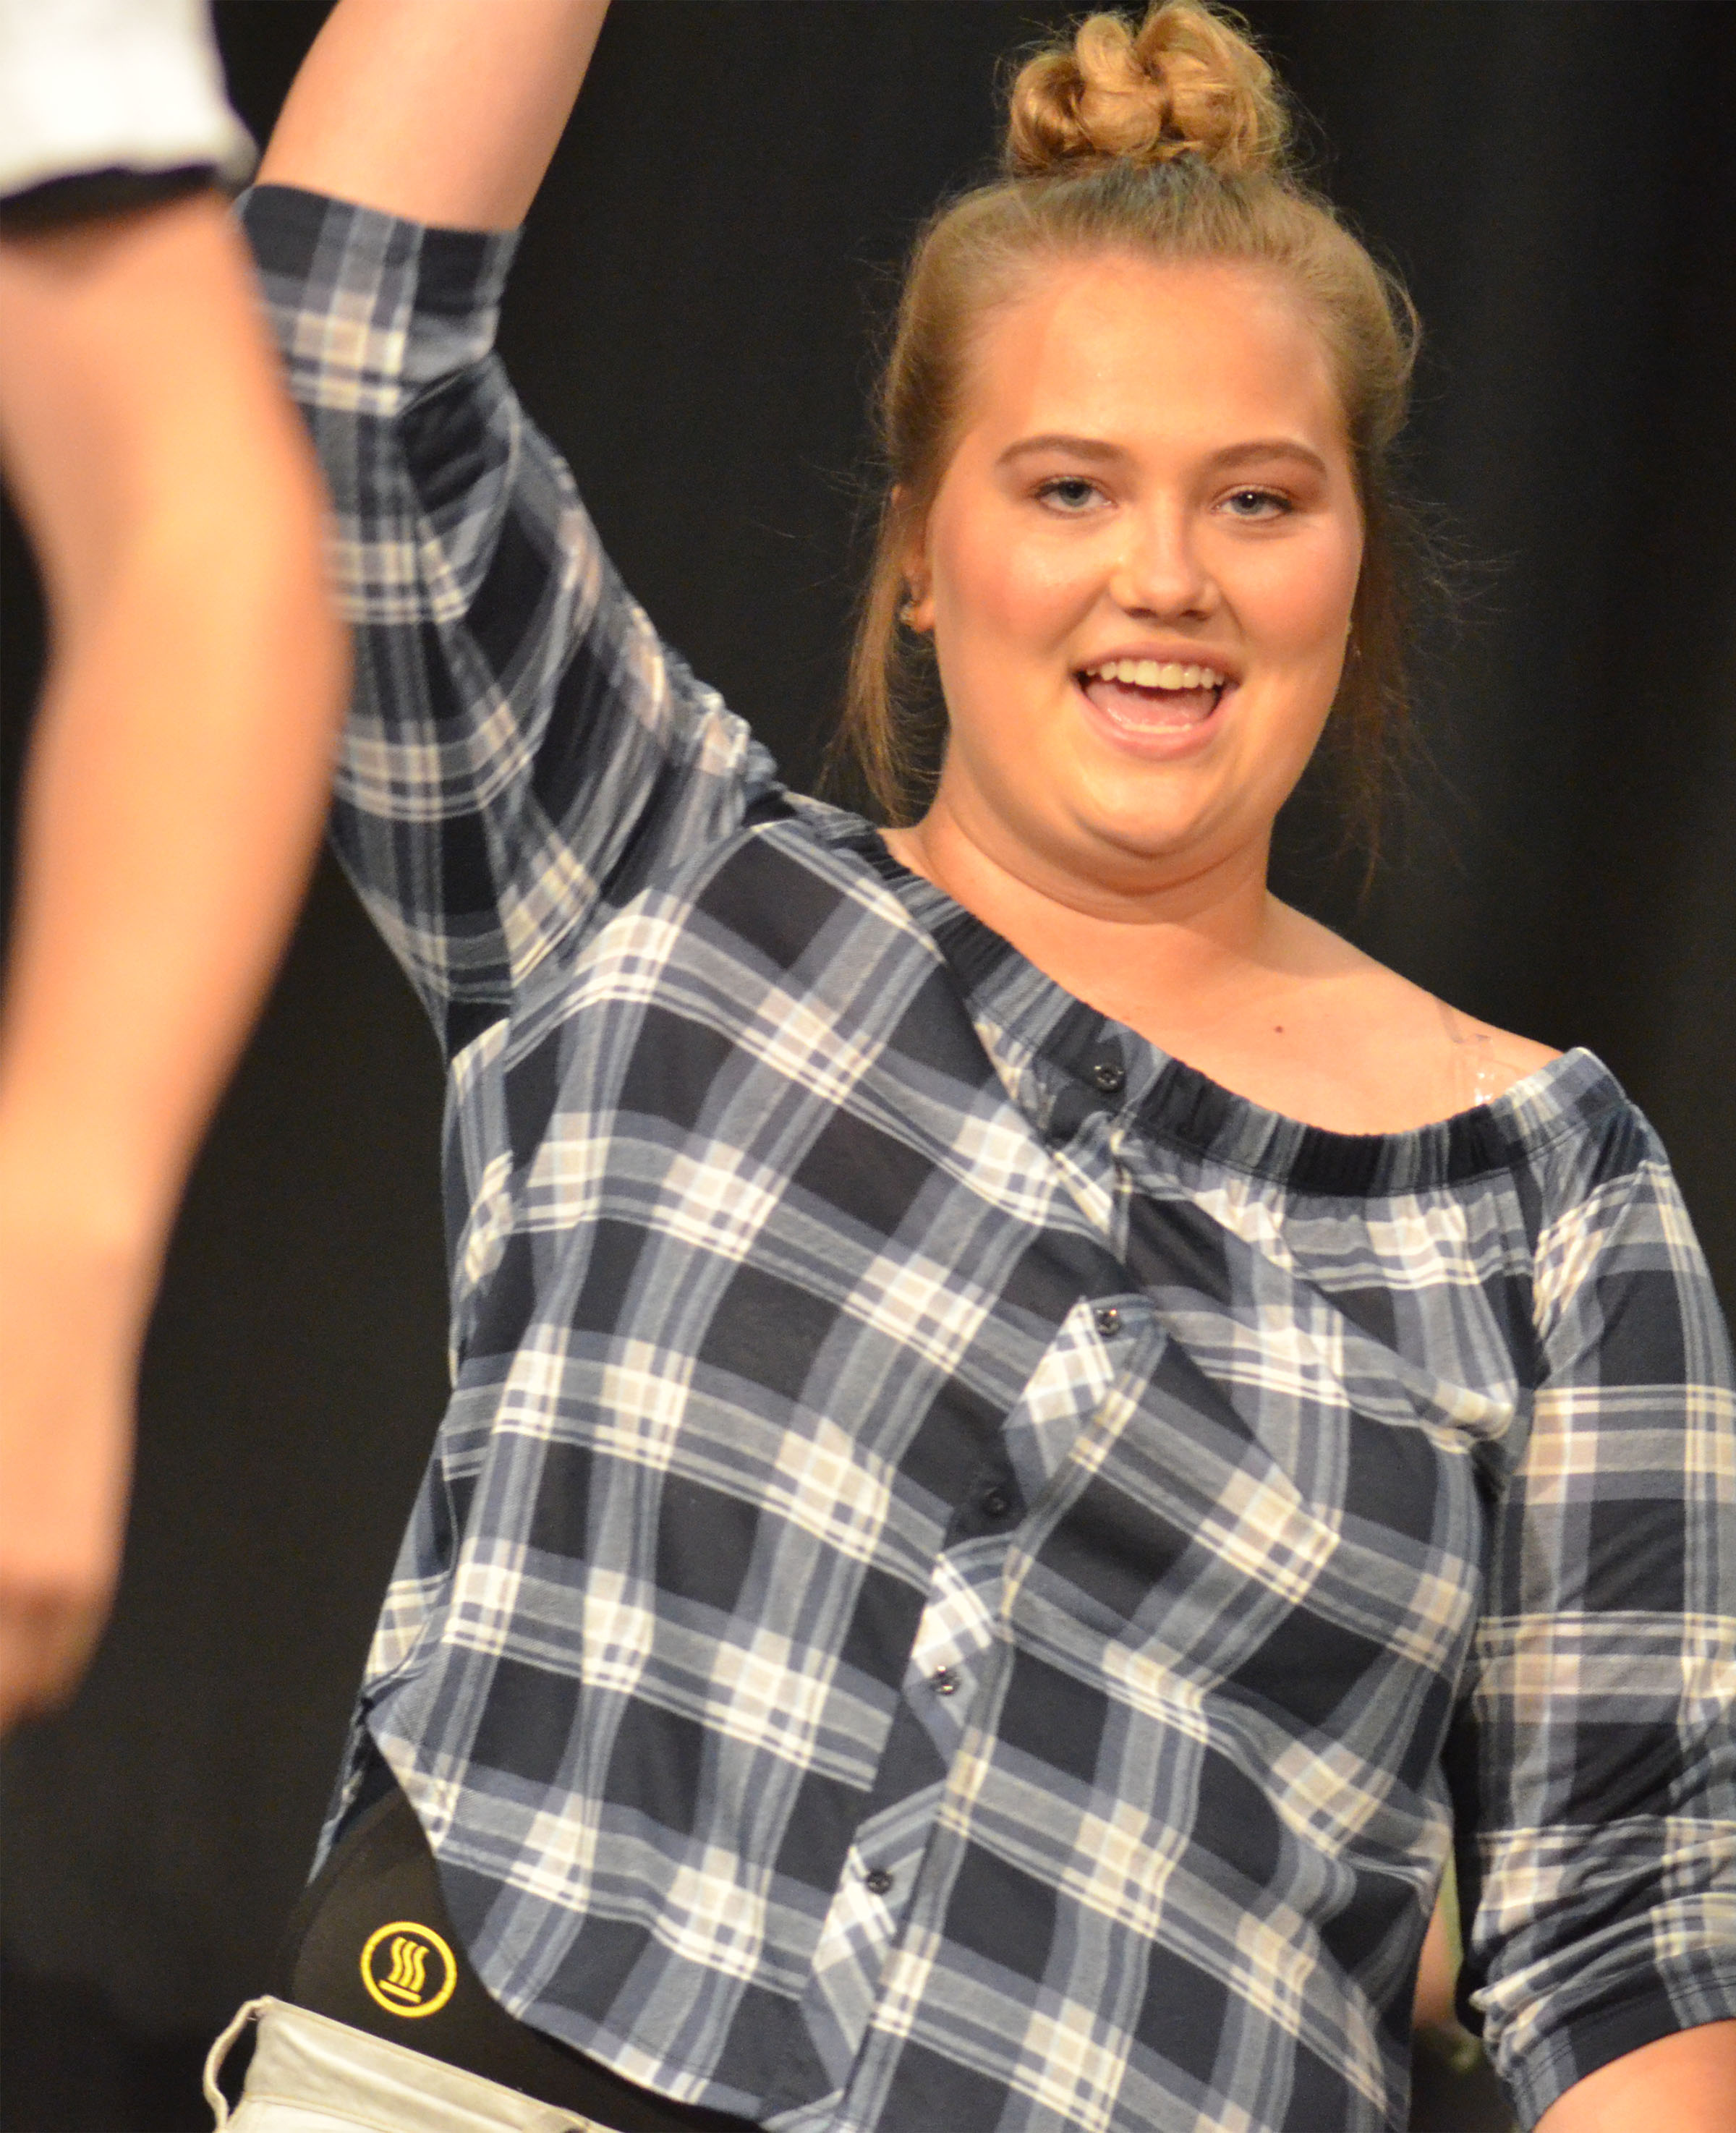 CHS senior Brenna Wethington dances.